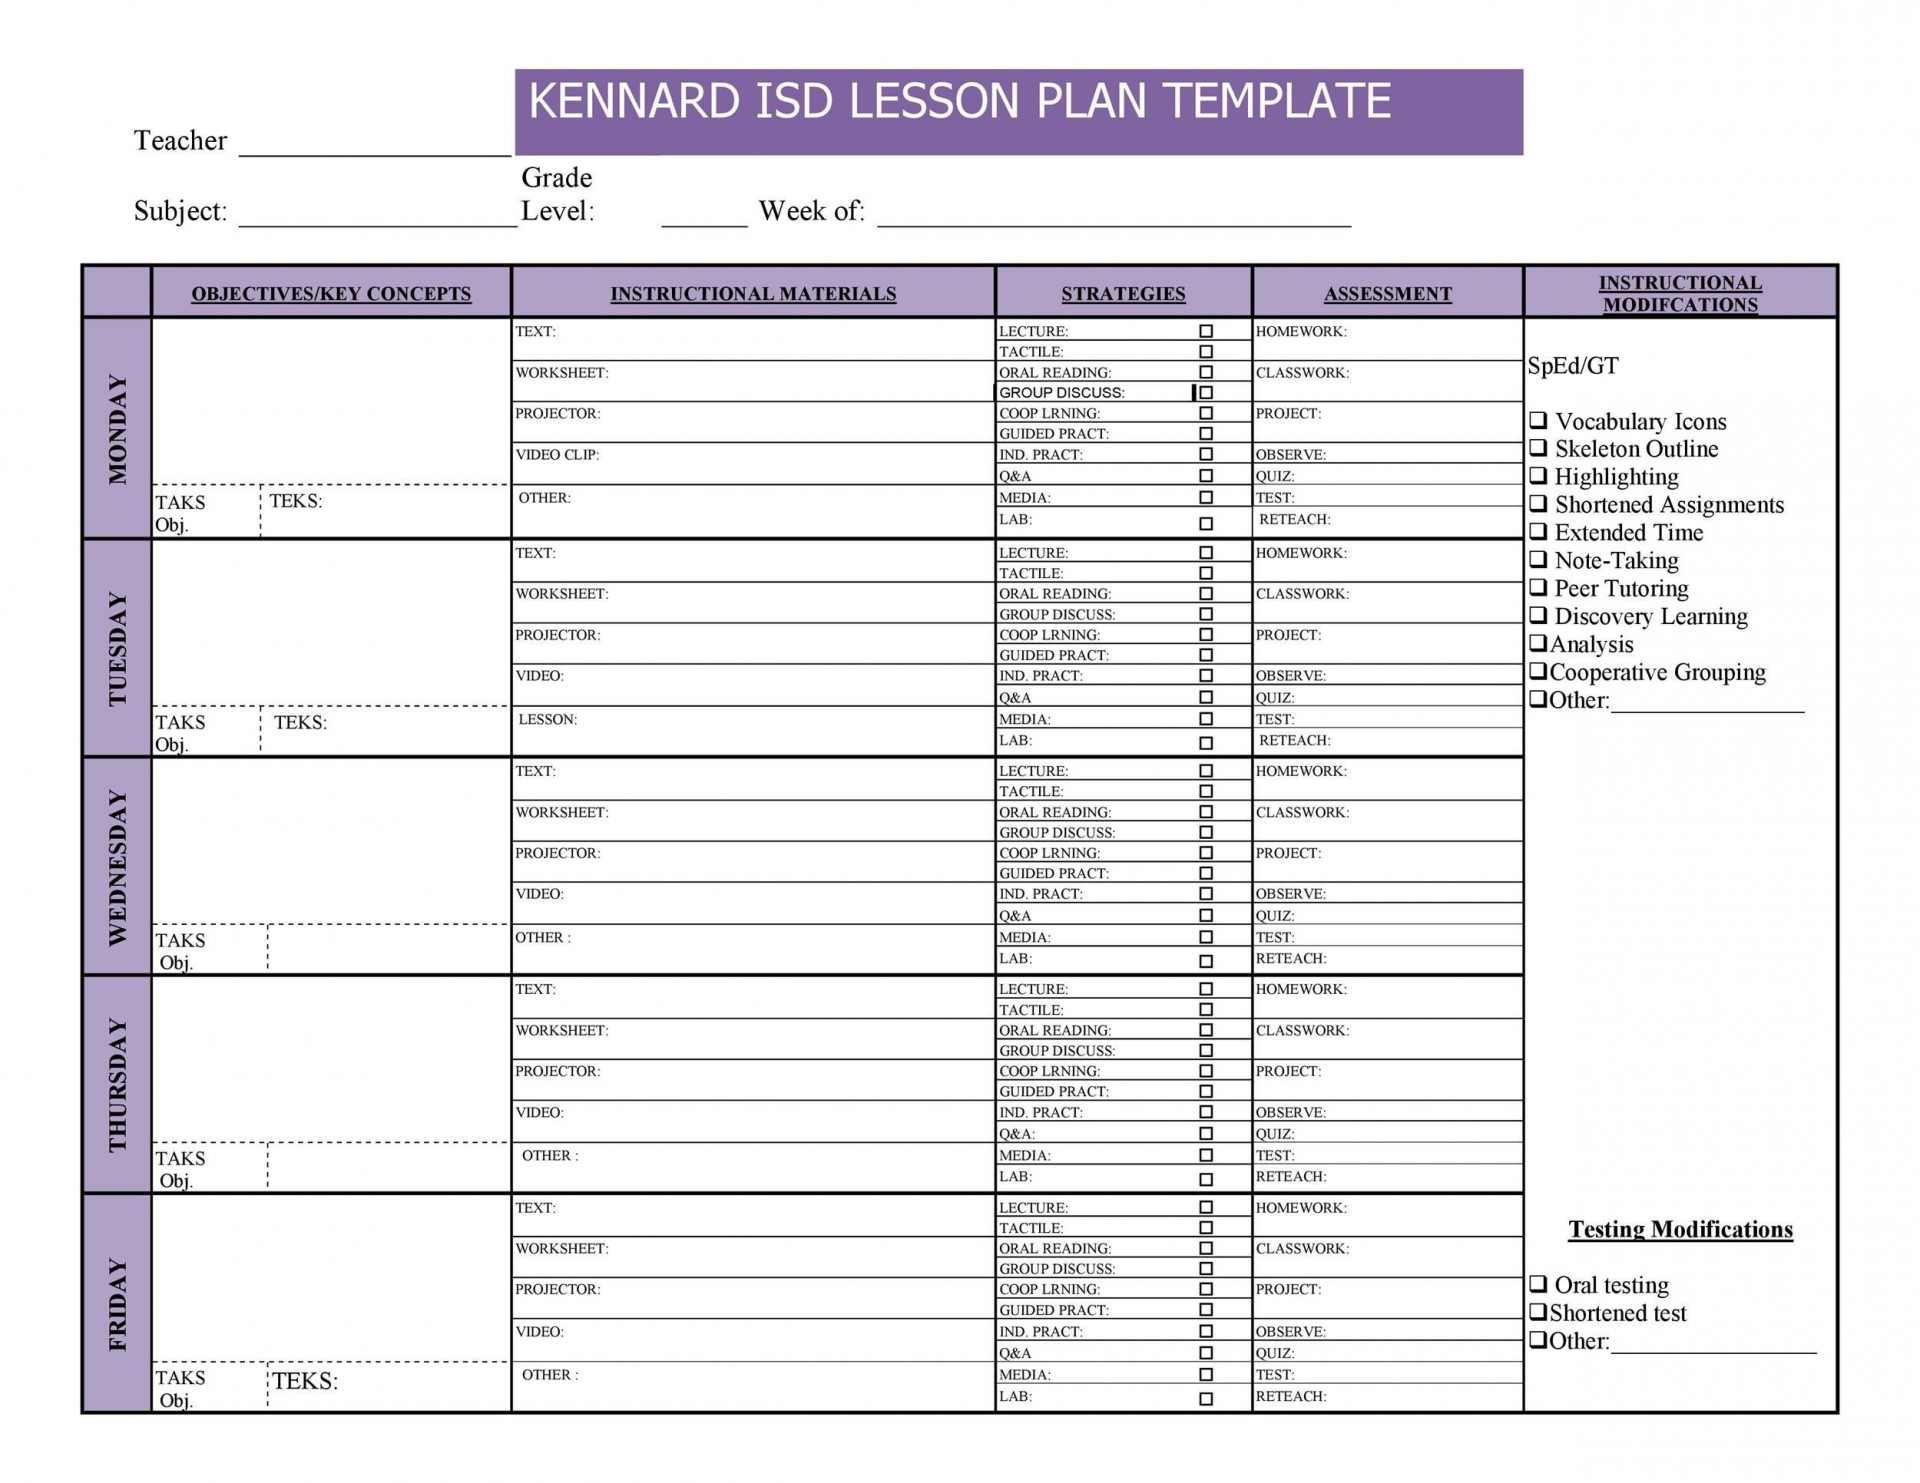 005 Fascinating Daycare Lesson Plan Template Word Example 1920